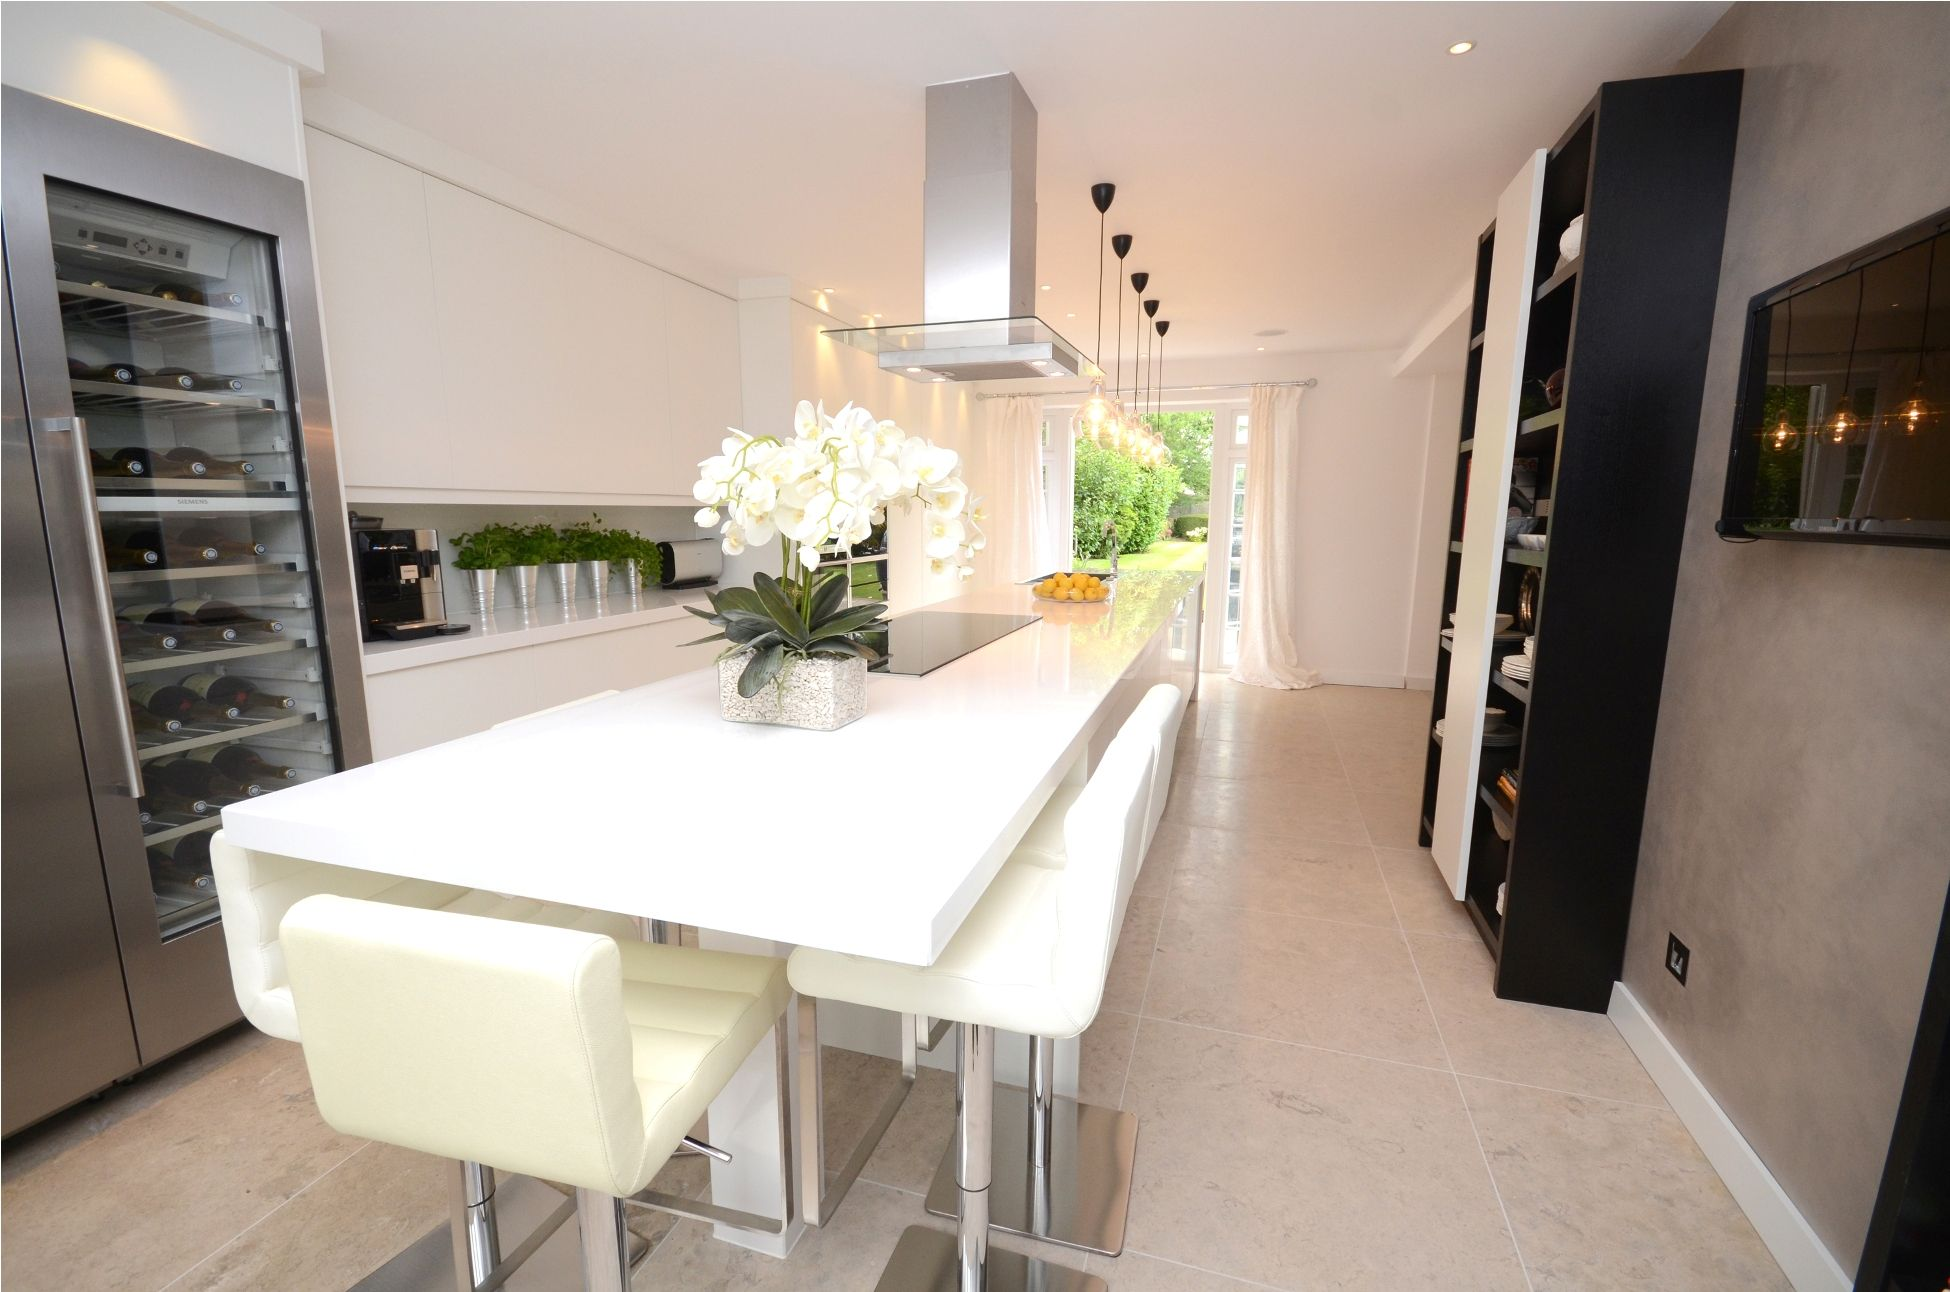 Kitchen Designers Long Island New Kelly Hoppen 5M Long Island Bench Featured On Superior Interiors Decorating Design